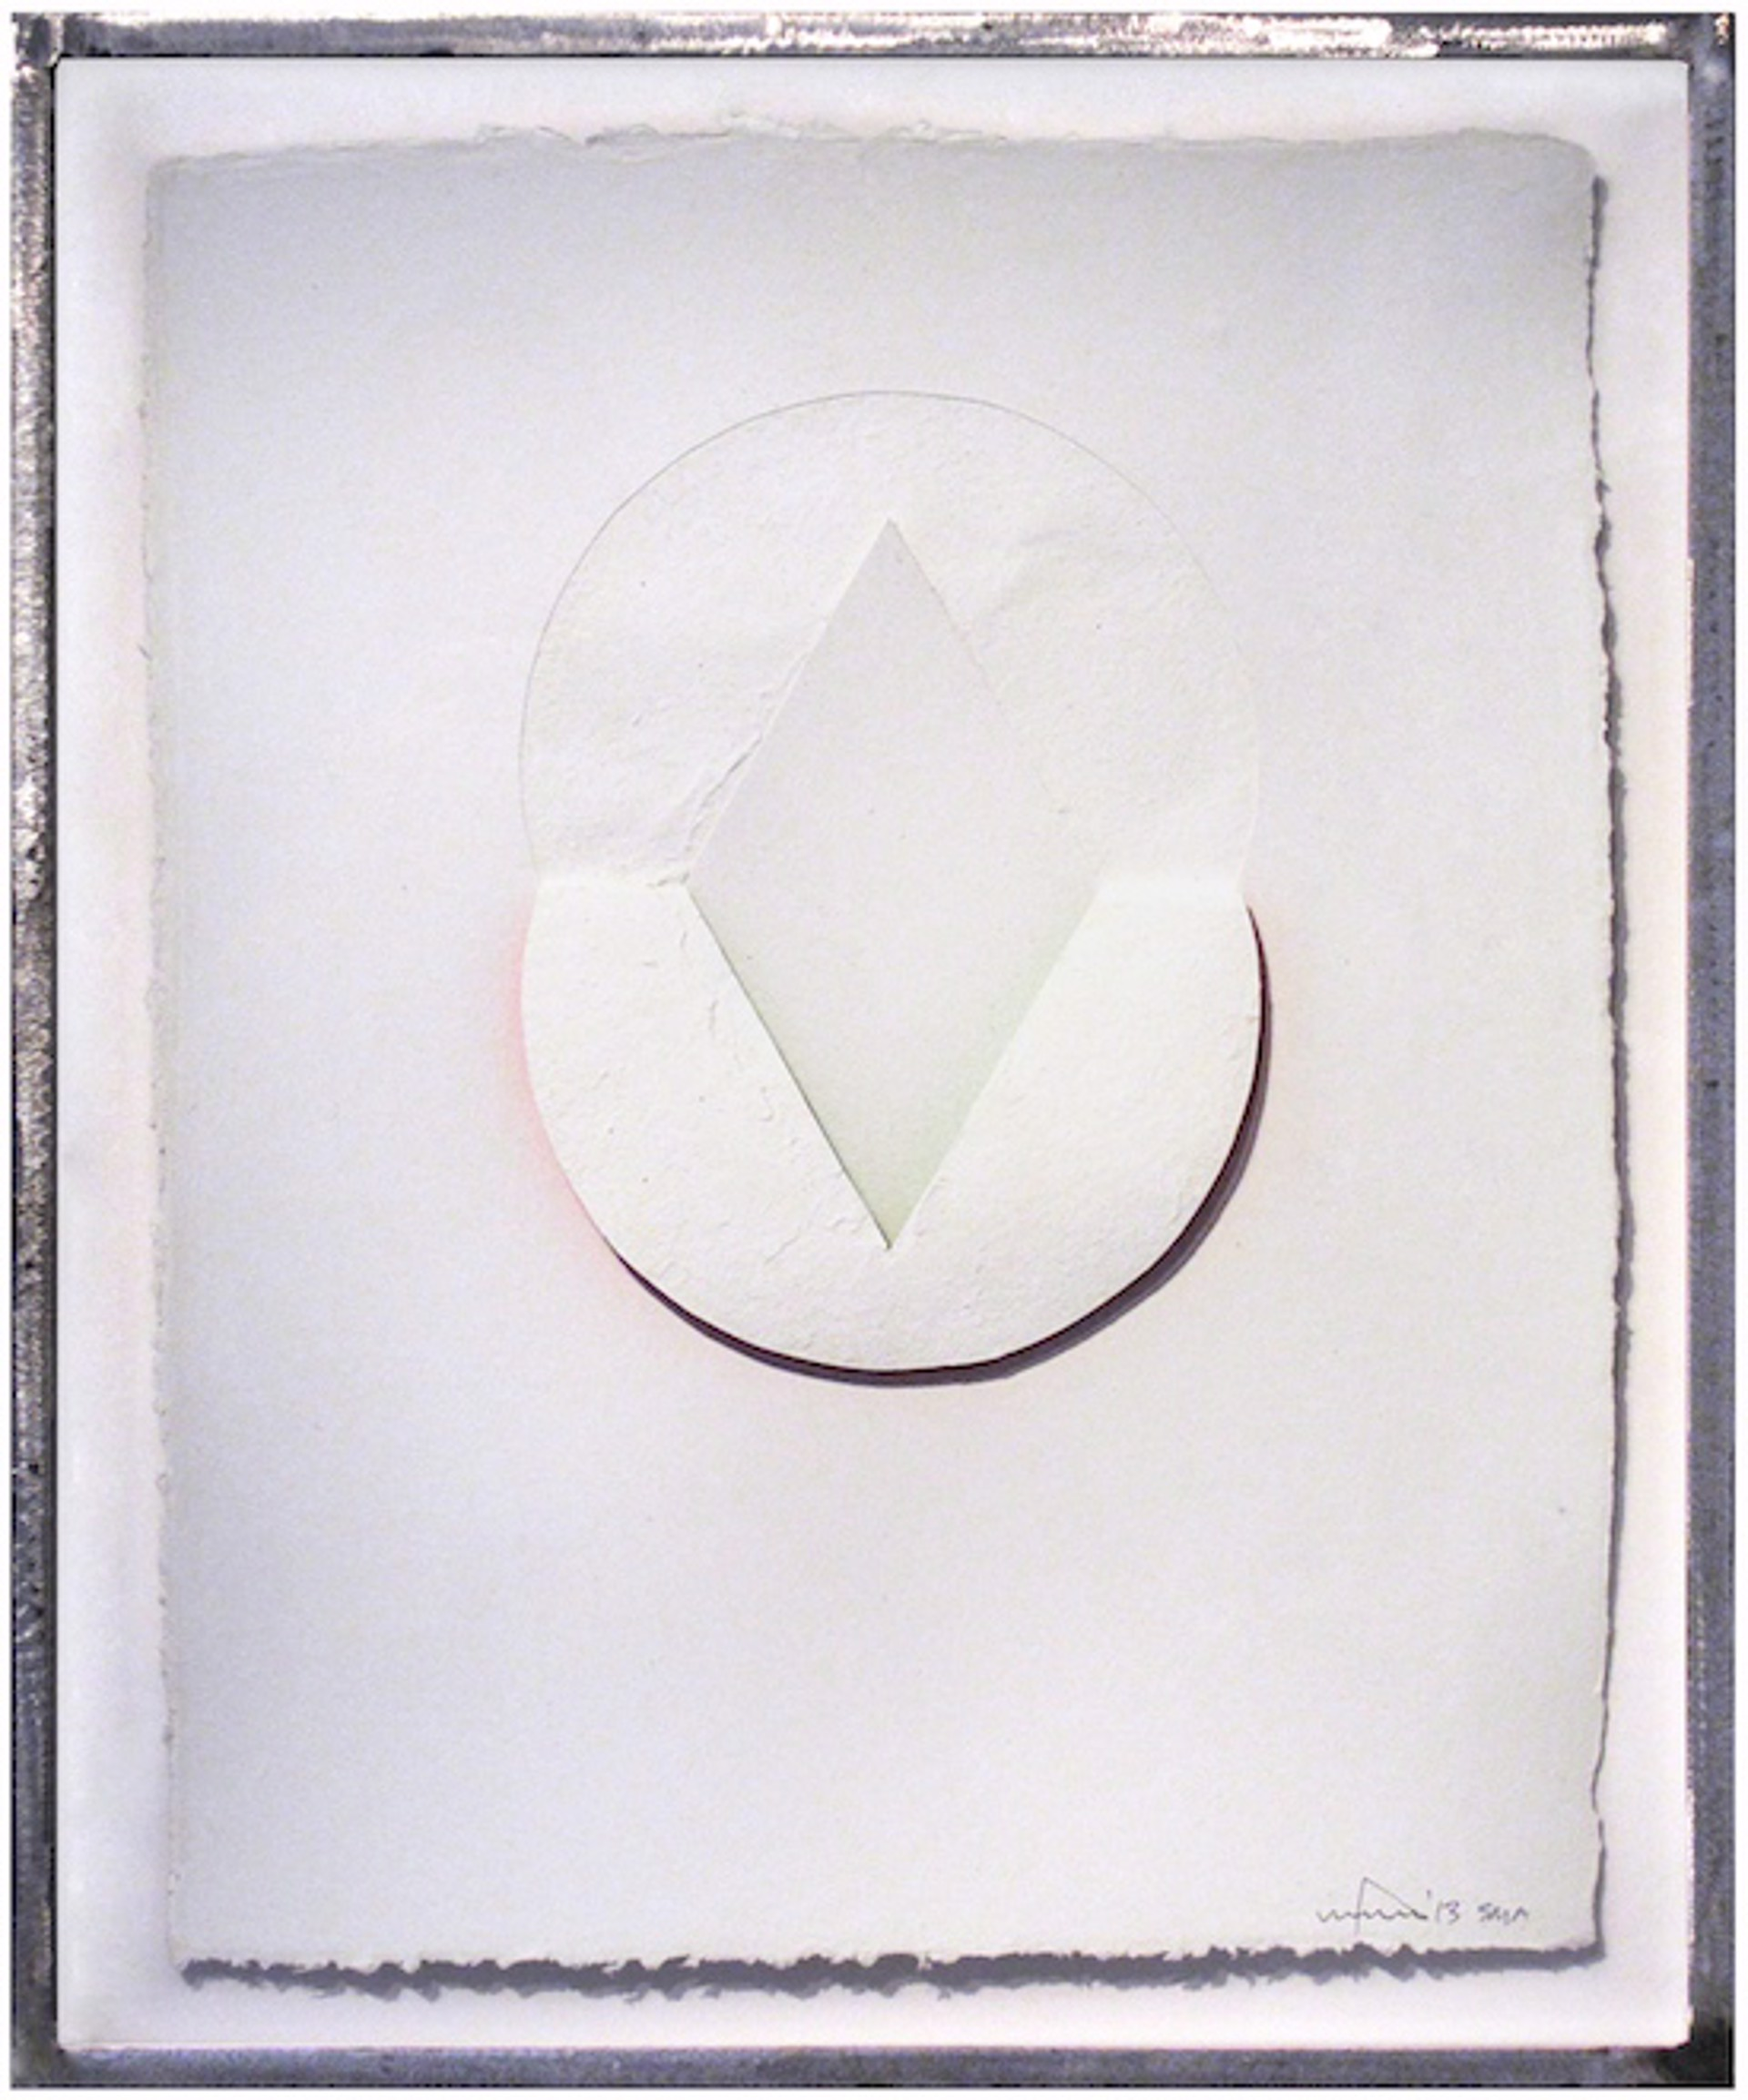 Untitled (SMA I) by William Fares